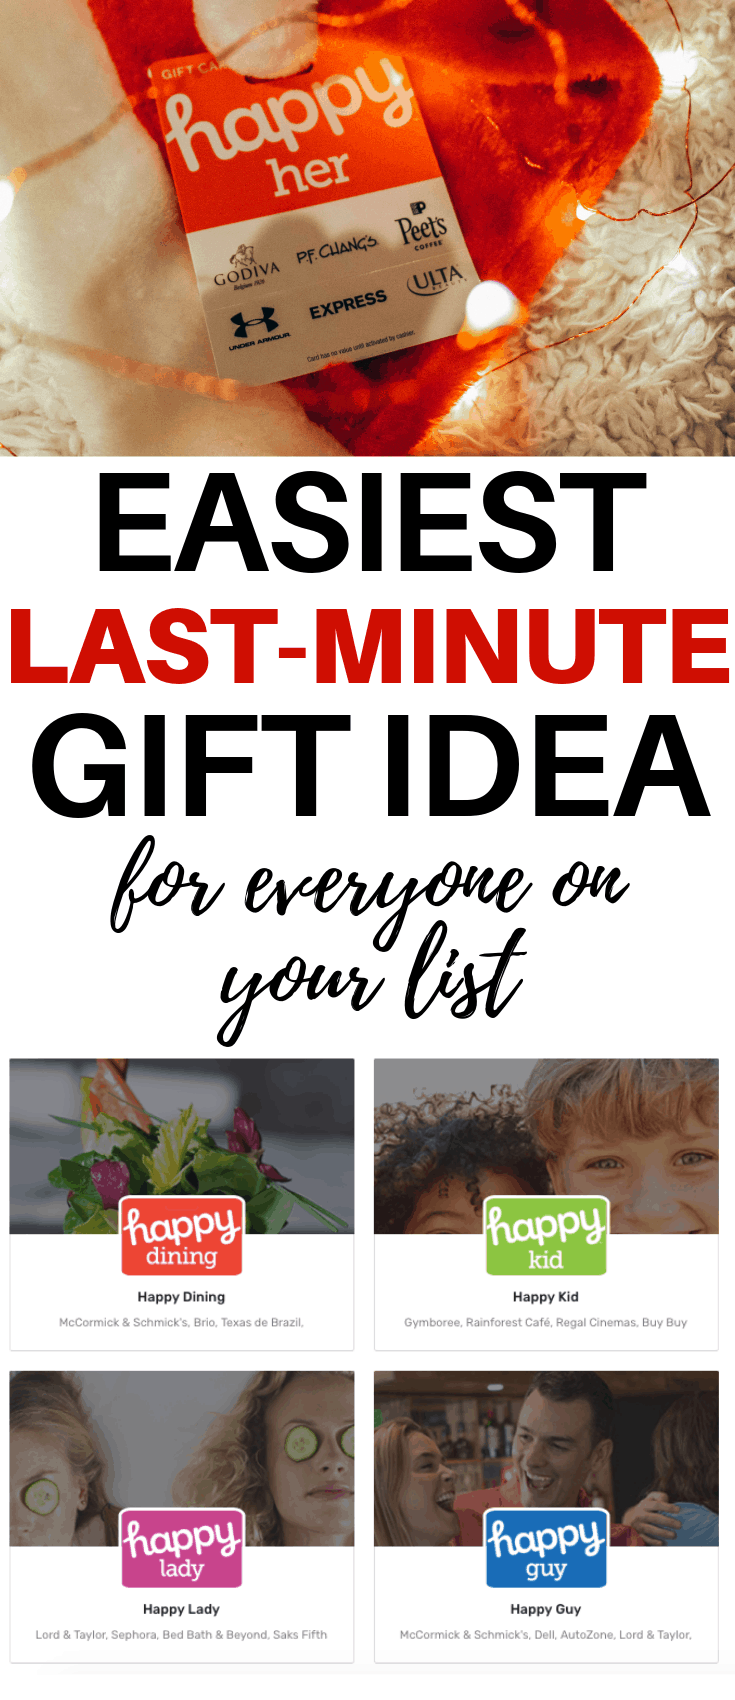 The Easiest Last Minute Gift Ideas for Christmas for Everyone on Your List | Gift Ideas for Teens, Him, Her